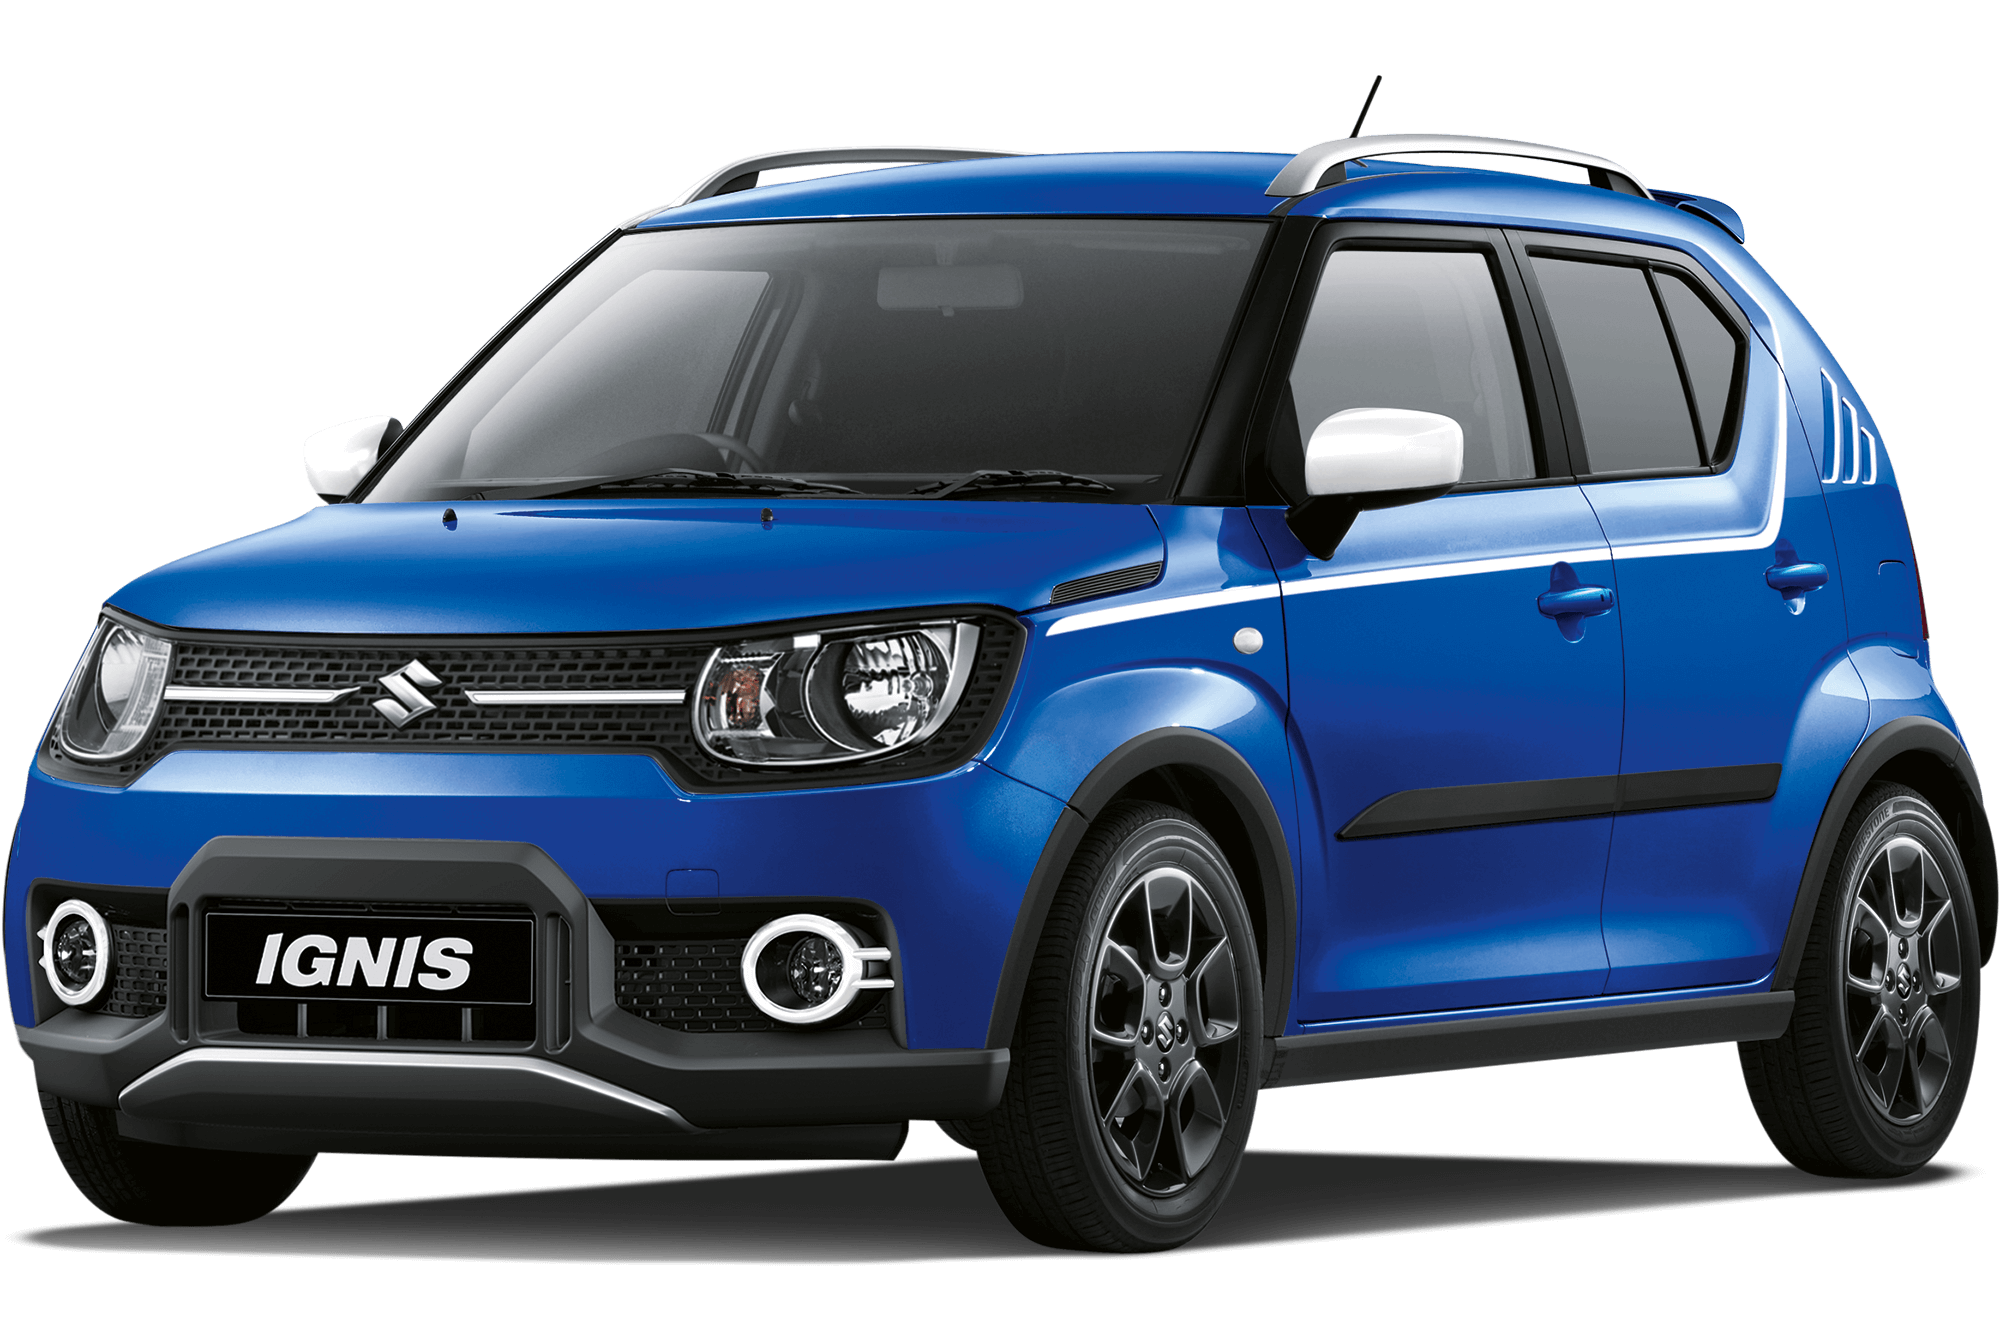 new suzuki ignis adventure specs price suzuki cars uk. Black Bedroom Furniture Sets. Home Design Ideas